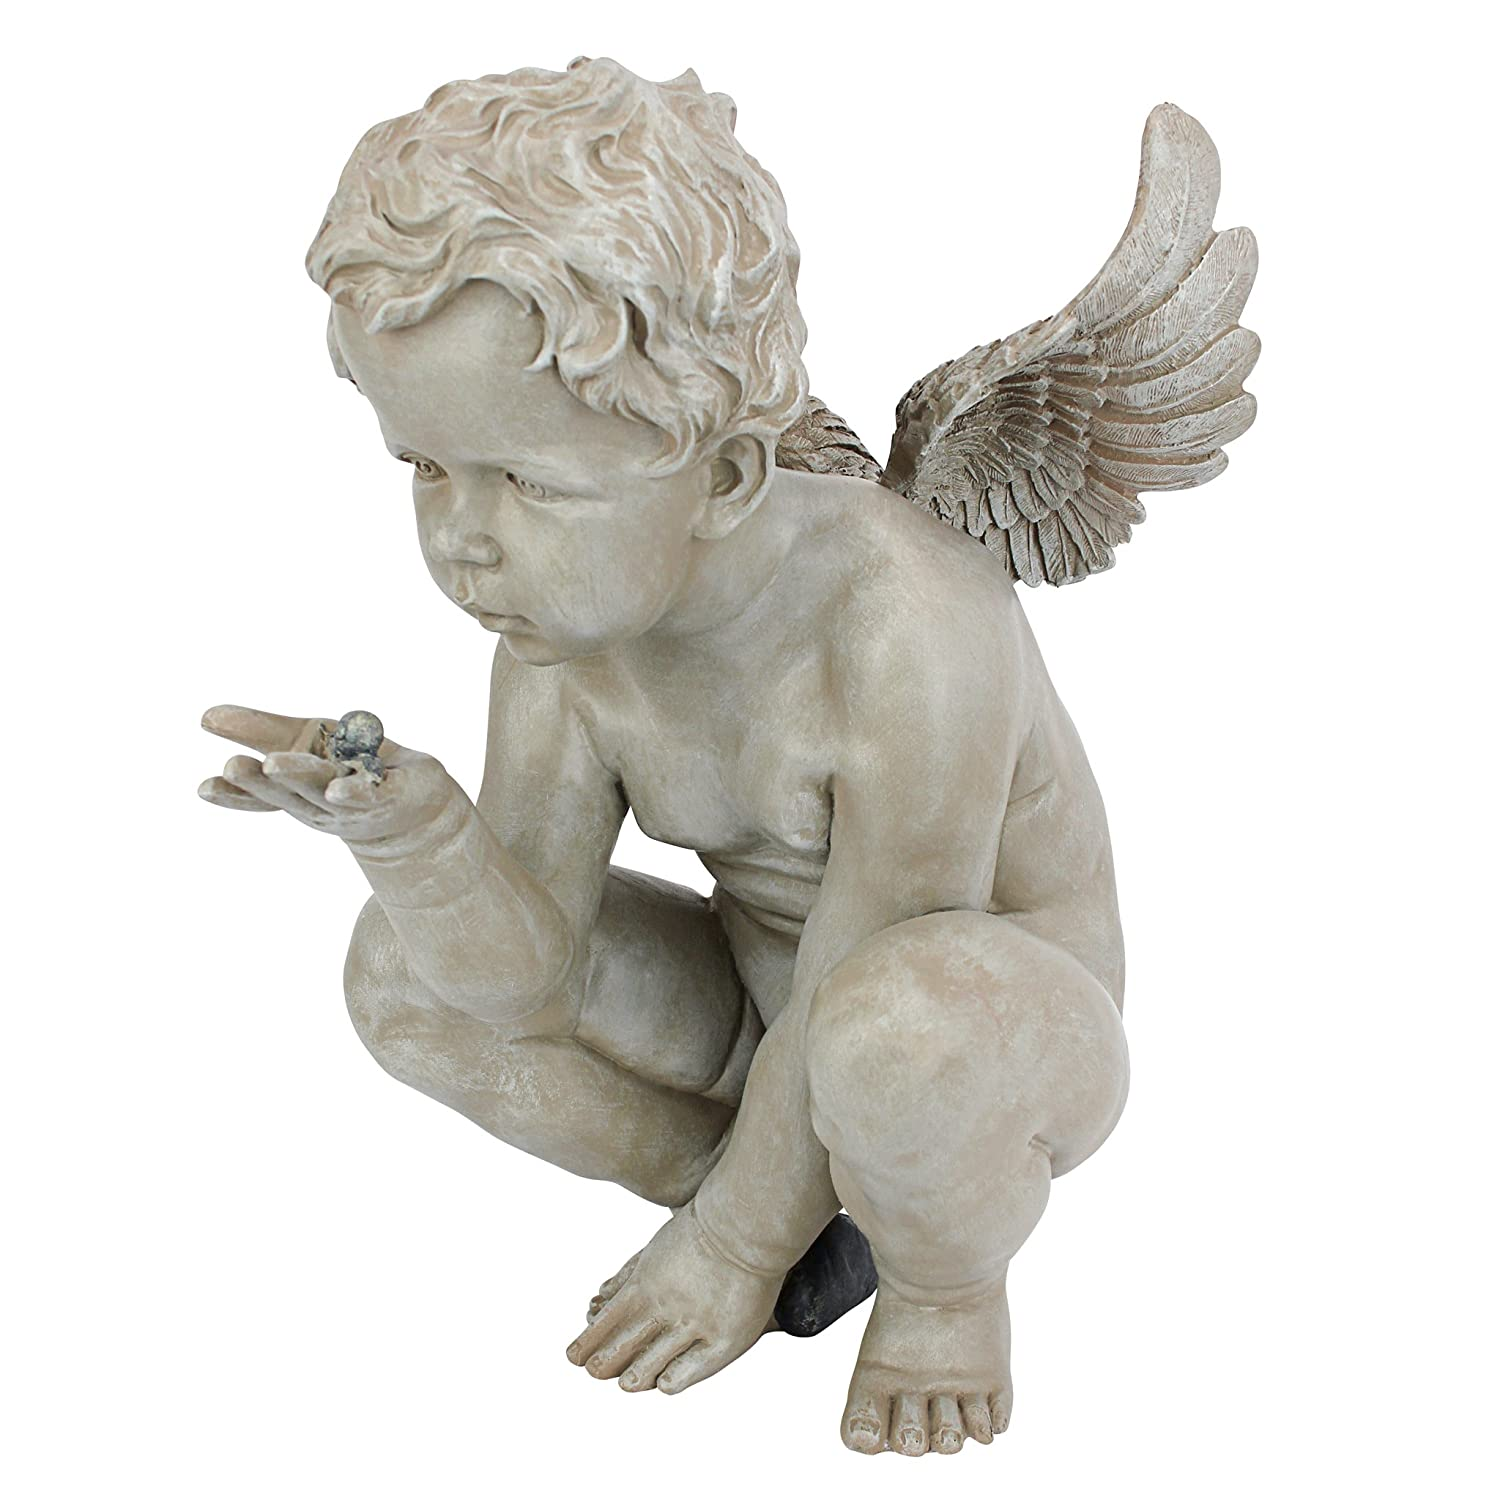 Amazon.com : Design Toscano Lifeu0027s Mysteries Cherub Statue : Outdoor  Statues : Garden U0026 Outdoor